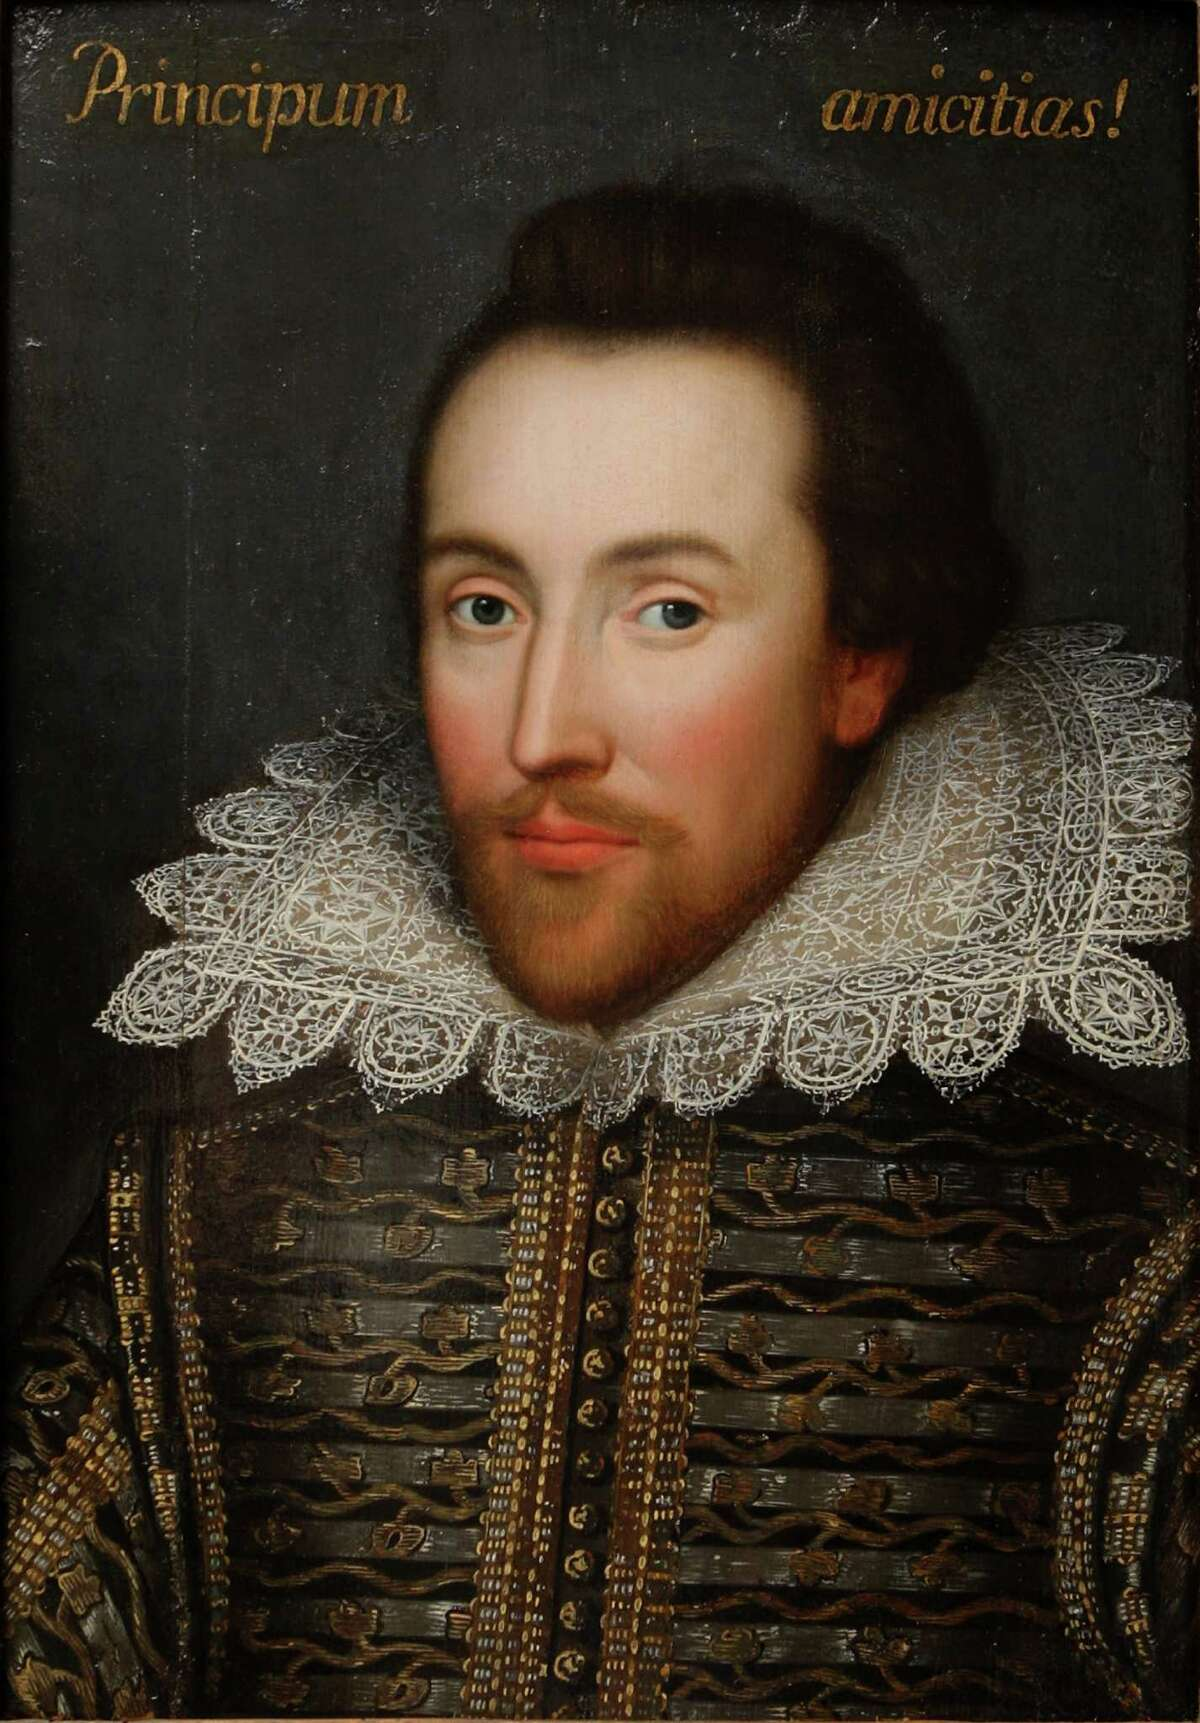 William Shakespeare was baptized on April 26, 1564 and died April 23, 1616 ... suffice it to say, those were some fairly productive years for this particular human being. To celebrate this auspicious week, we've hunted down some surprising moments of mostly famous people performing or rehearsing his plays (or those plays and movies that were derived from his work). We also interspersed the various images of the playwright and poet. The one above is considered to be the one most like the man (more about the portrait in the last slide ... on with the fun). Happy Shakespeare week!